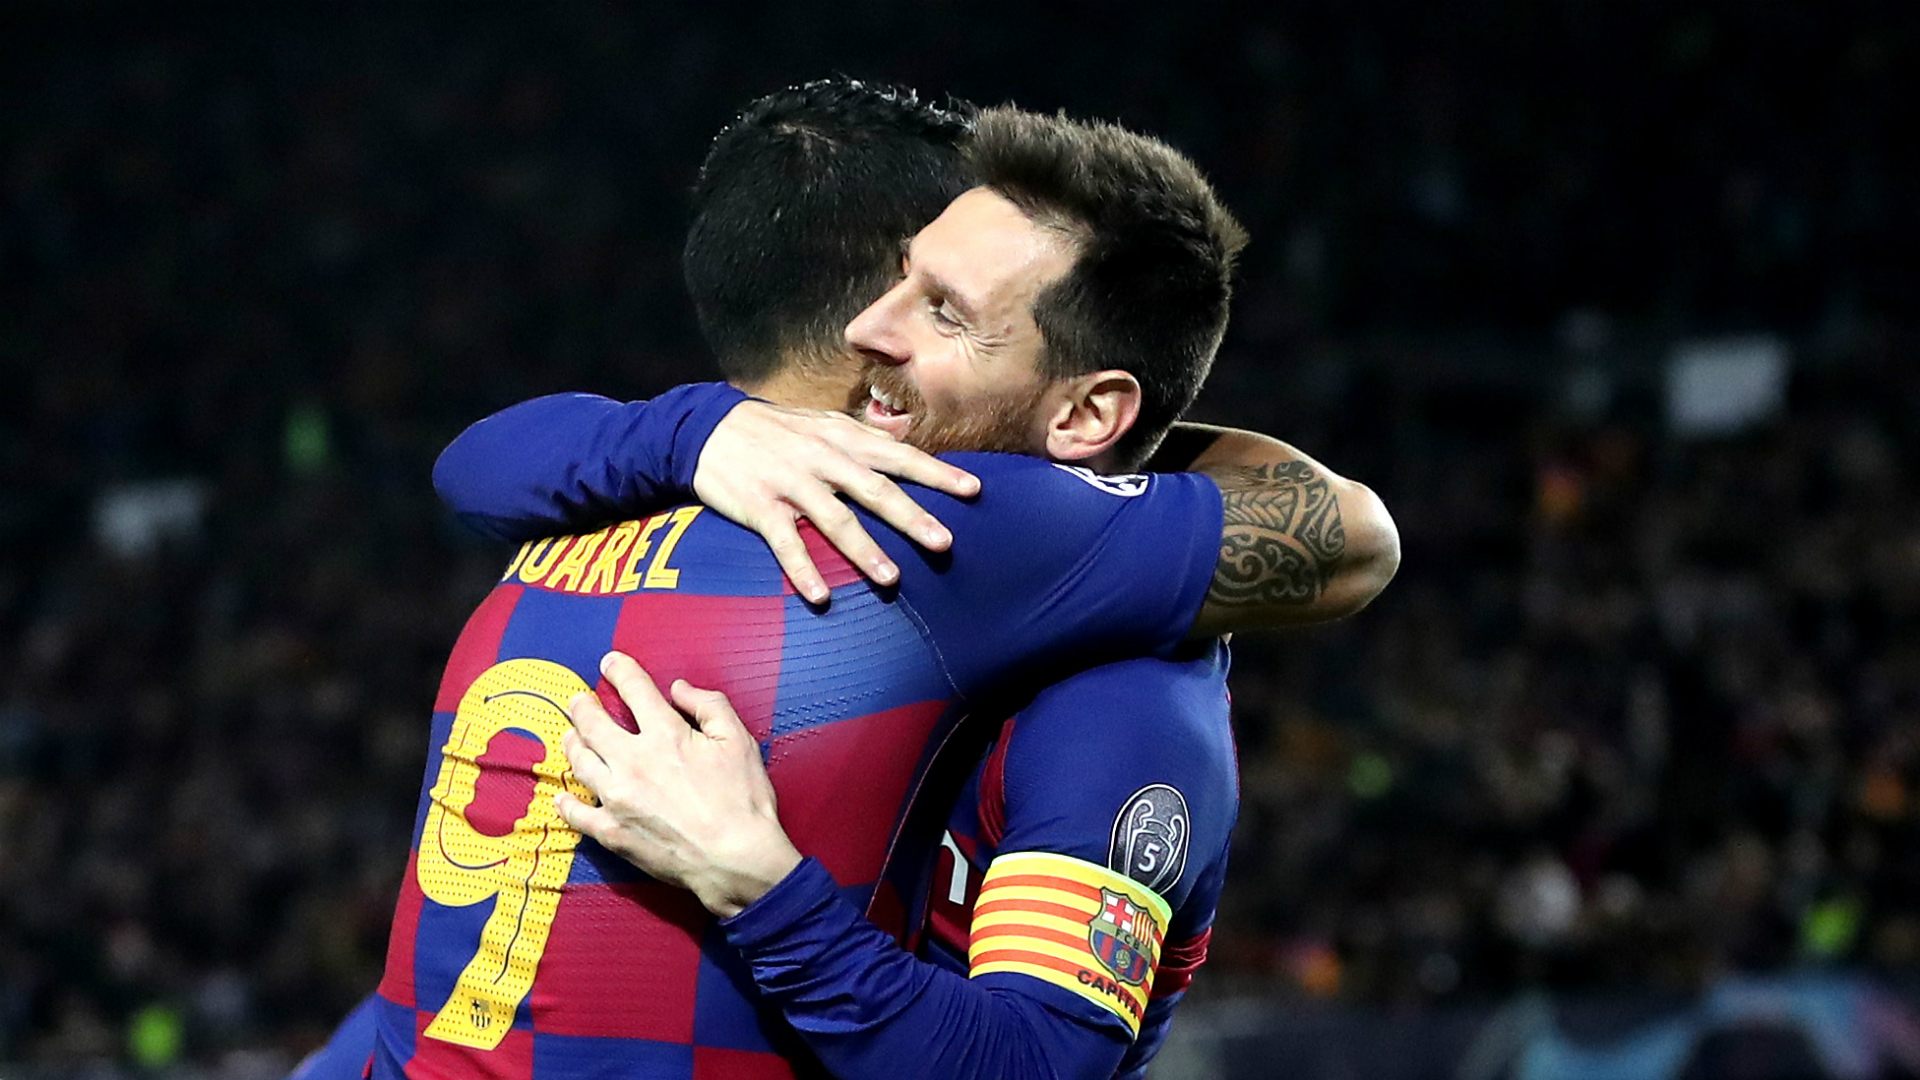 Barcelona 3-1 Borussia Dortmund: Qualification sealed by Suarez, Messi and Griezmann